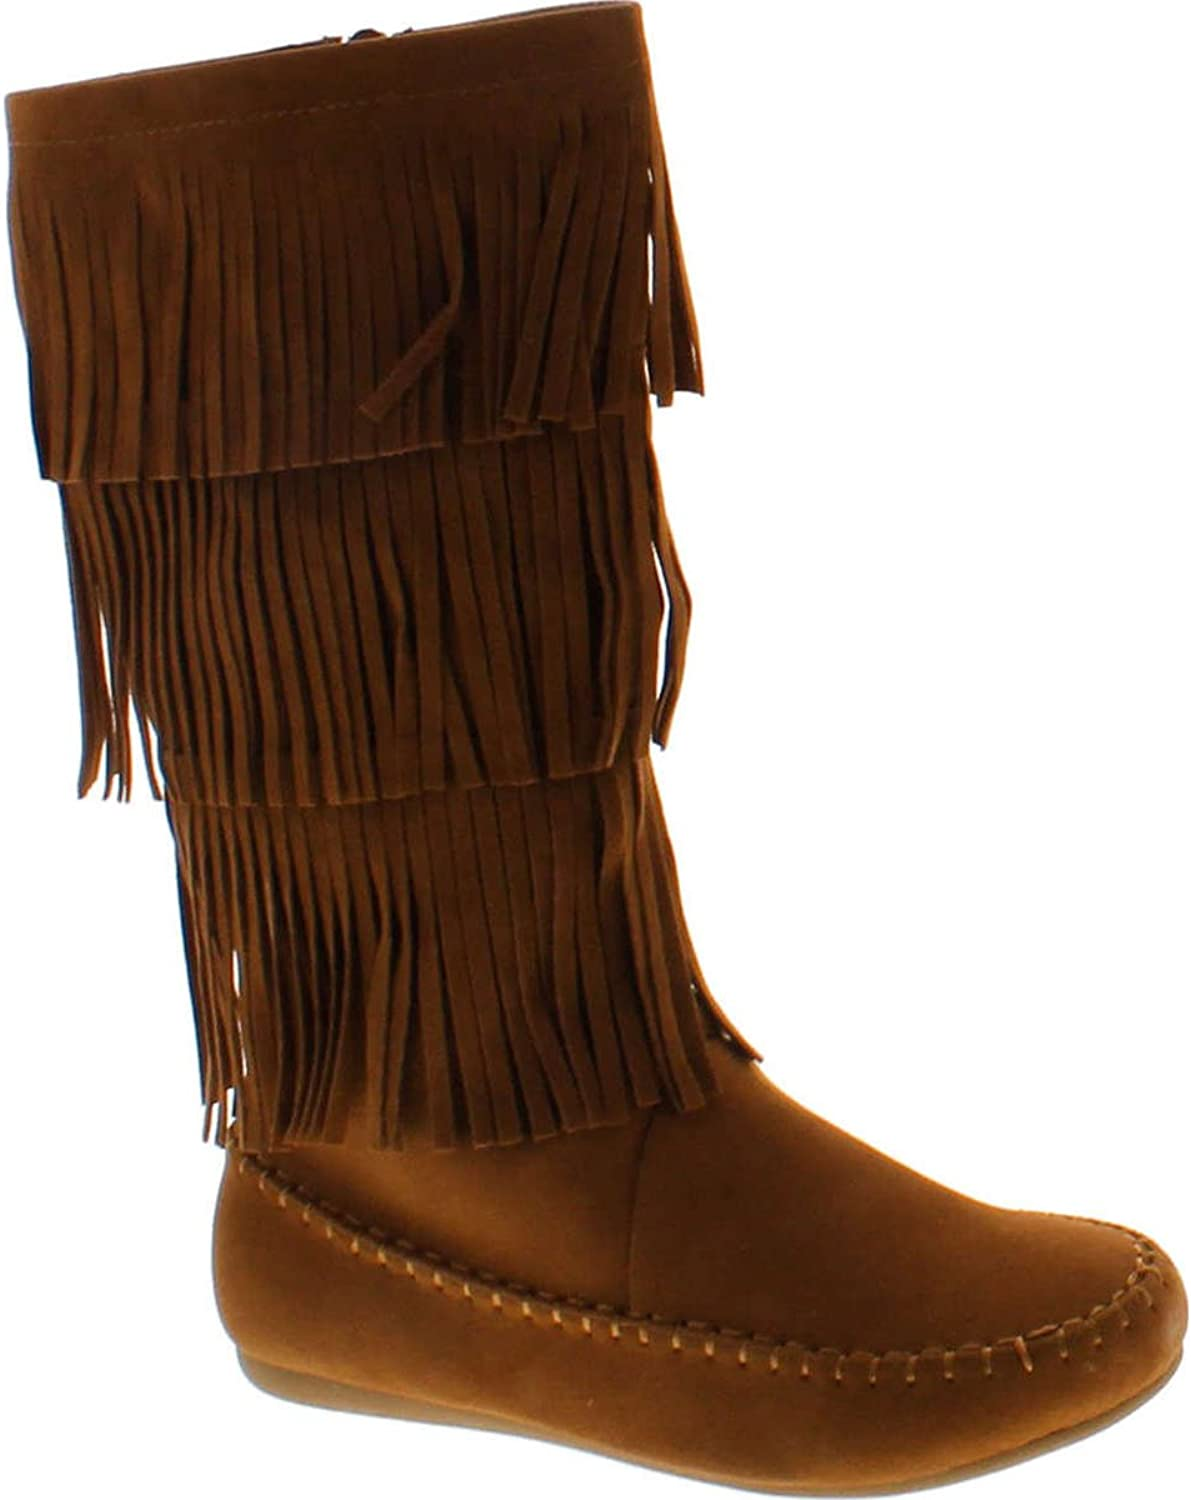 Forever Link Women's Candice-48 Five Tier Faux Suede Fringe Boots